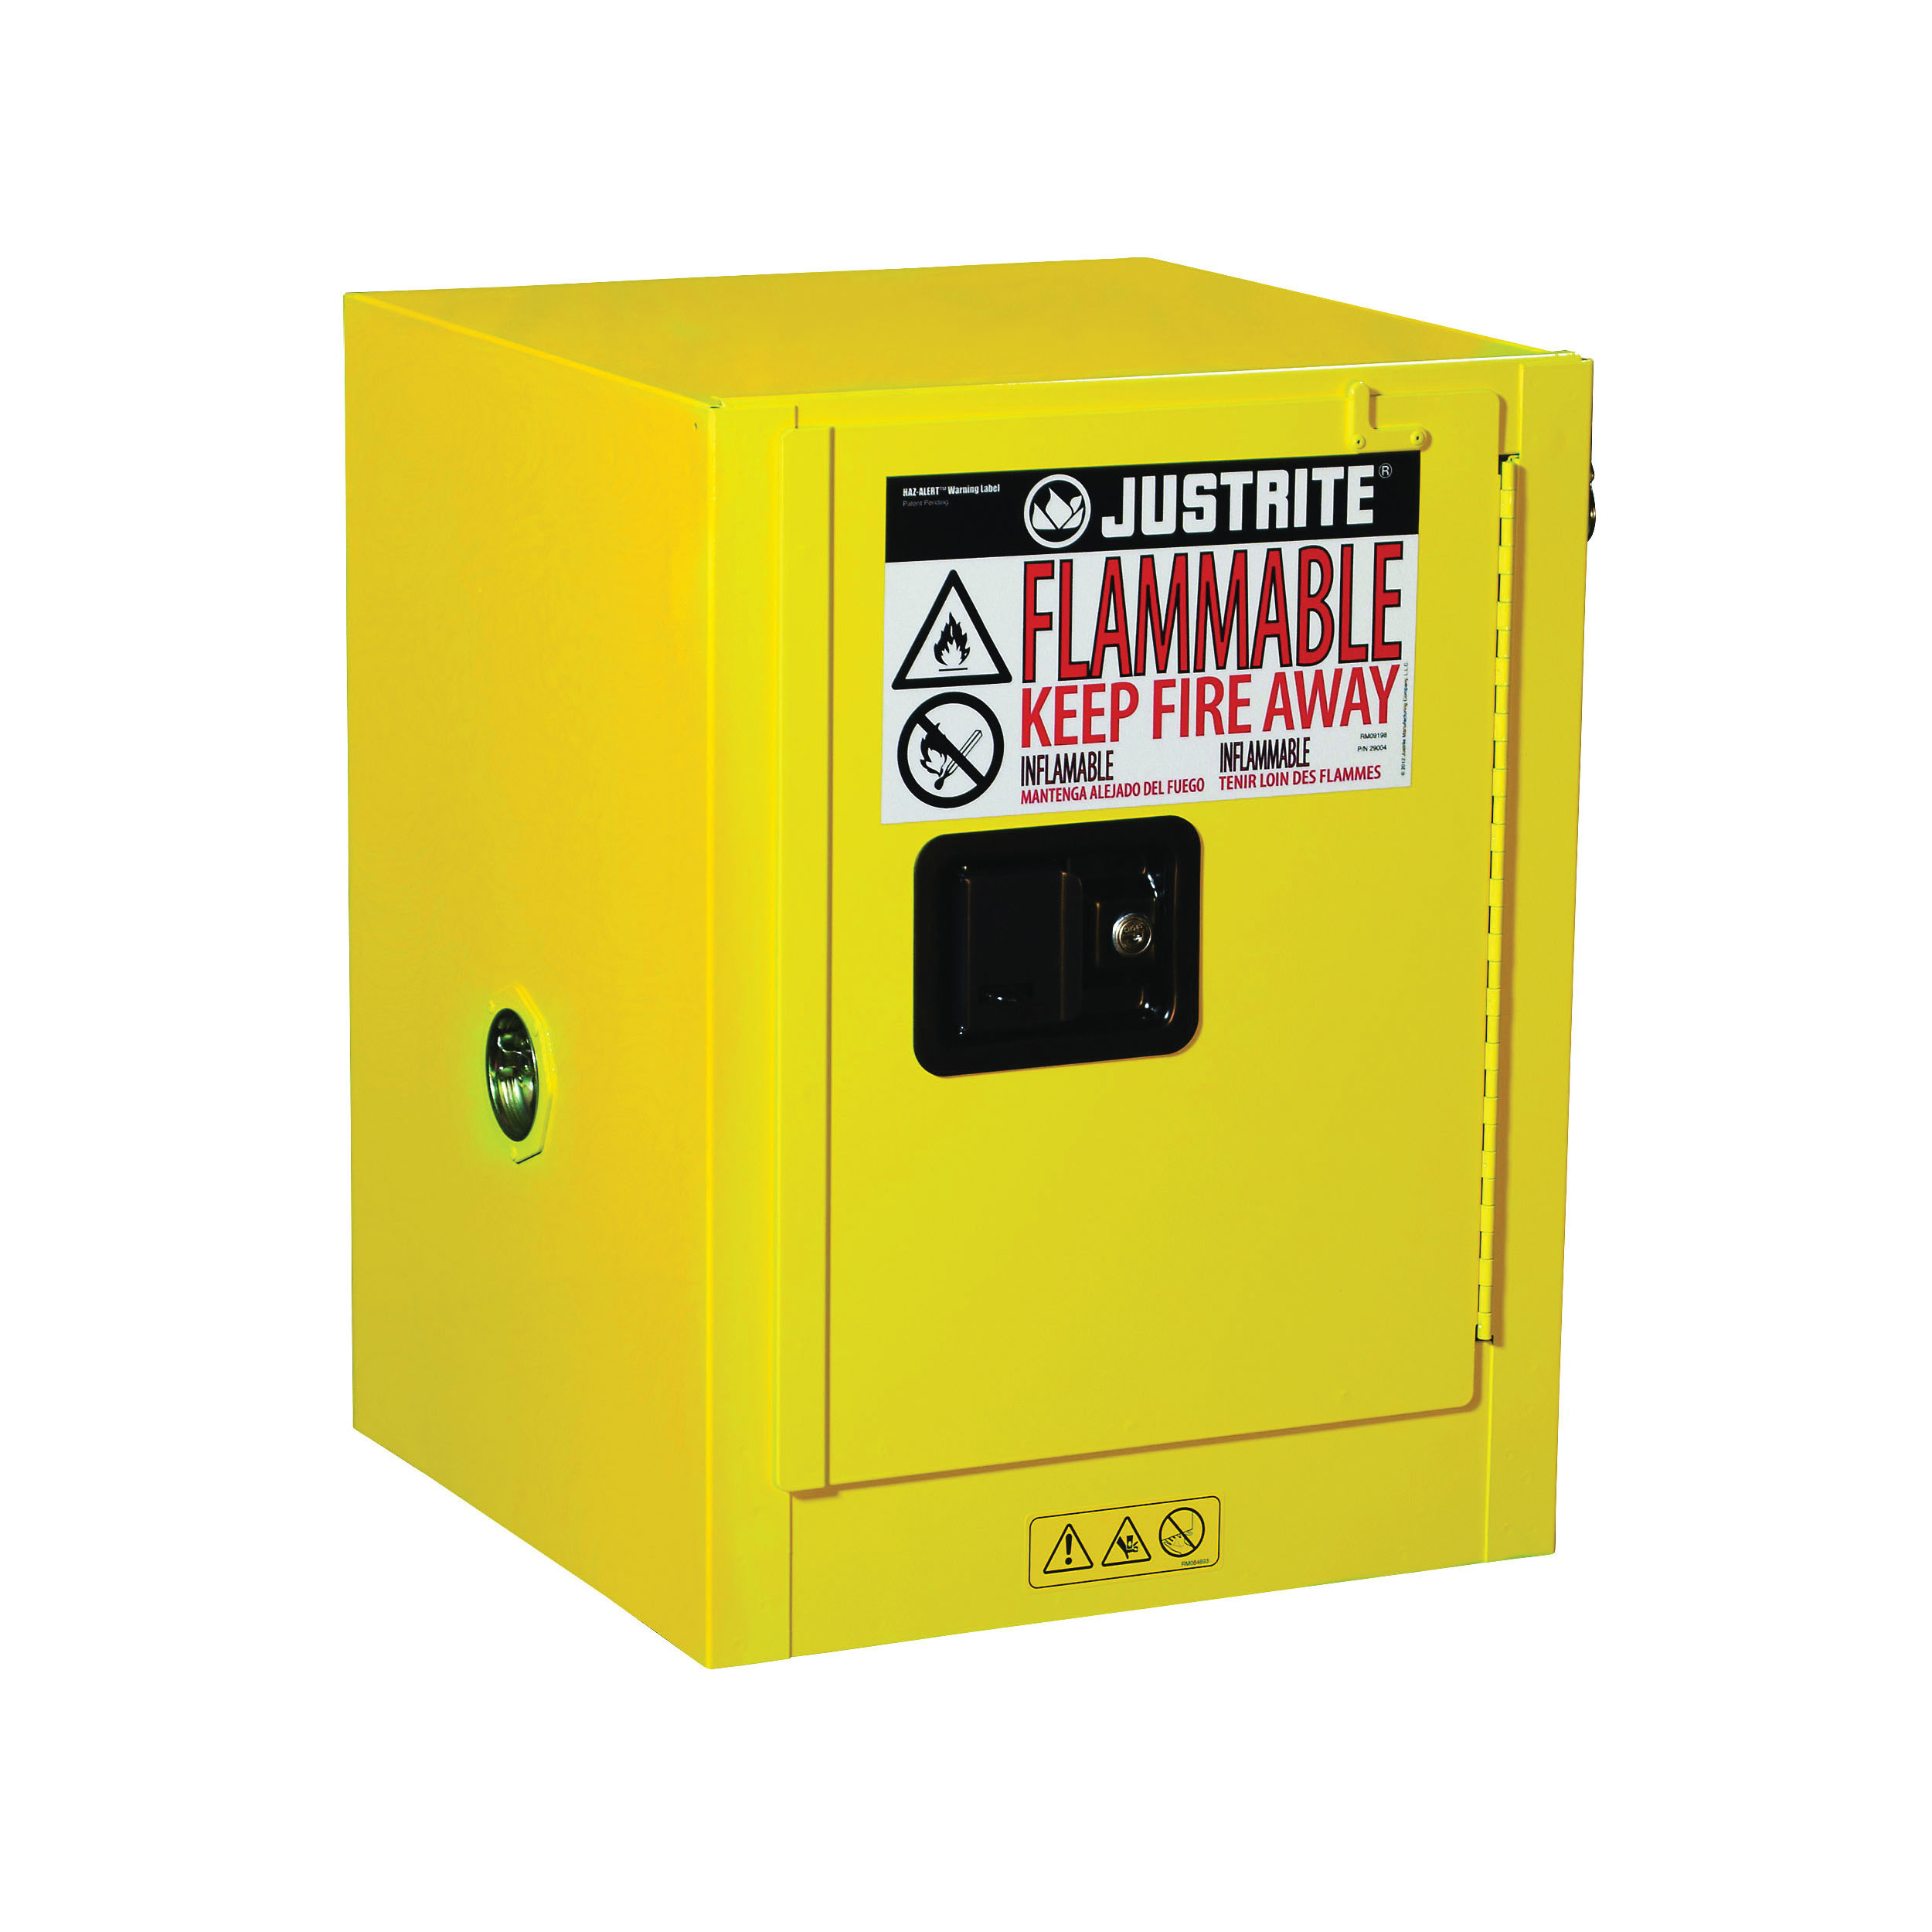 Justrite® 890400 Sure-Grip® EX Countertop Flammable Safety Cabinet, 4 gal Capacity, U-Loc™ Handle, 22 in H x 17 in W x 17 in D, Manual Close Door, 1 Doors, 1 Shelves, Cold Rolled Steel, Yellow